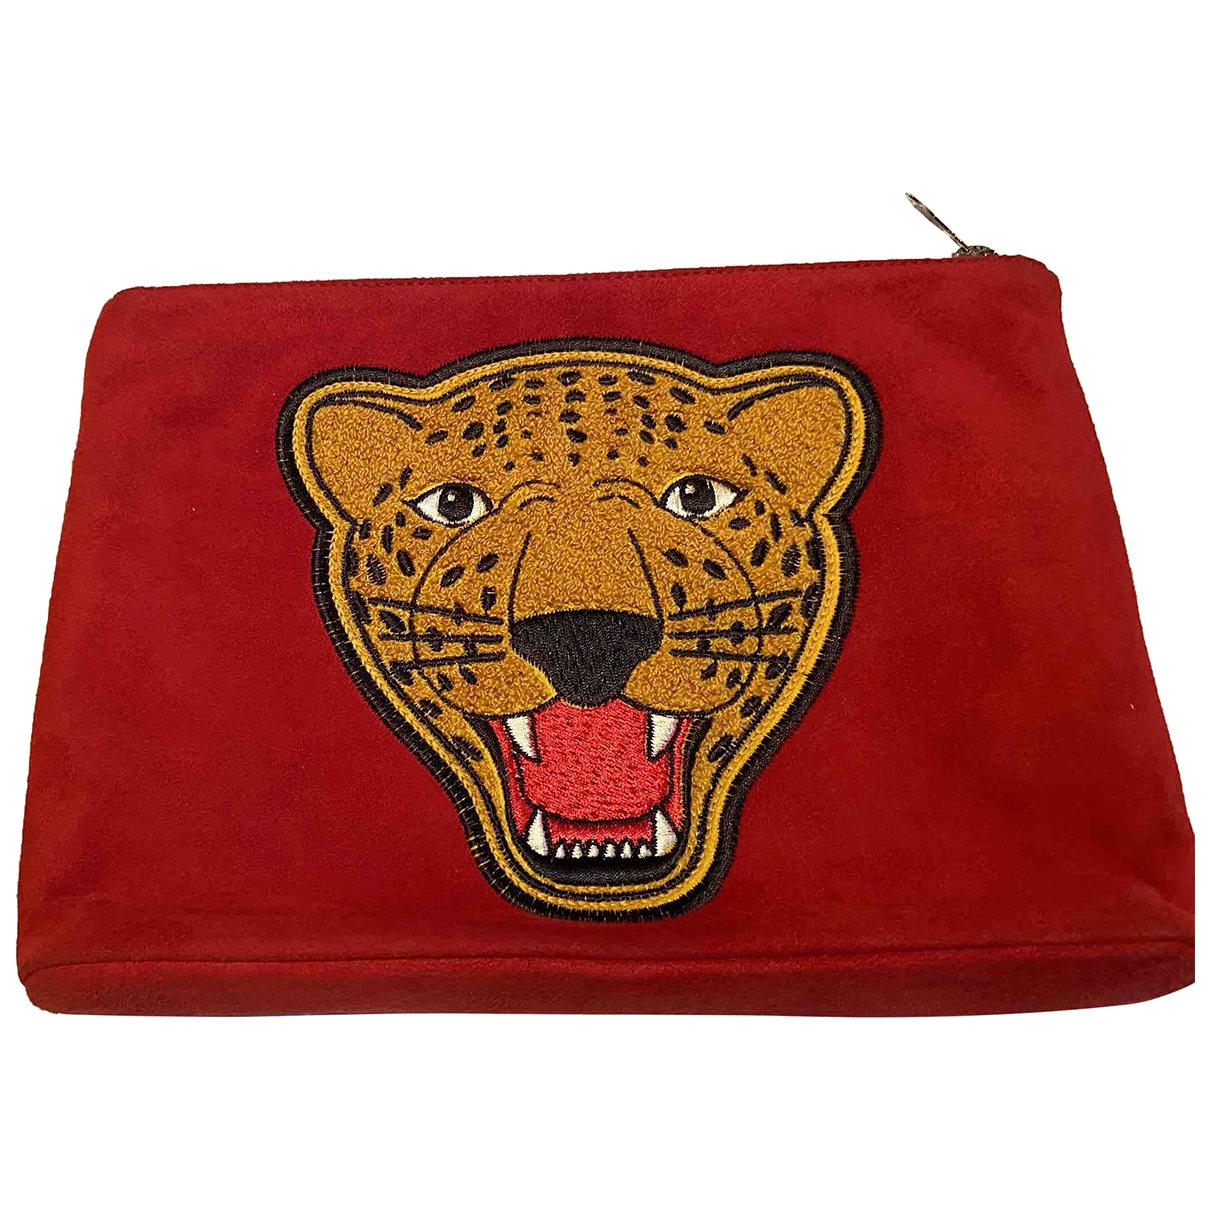 Charlotte Olympia \N Red Suede Clutch bag for Women \N